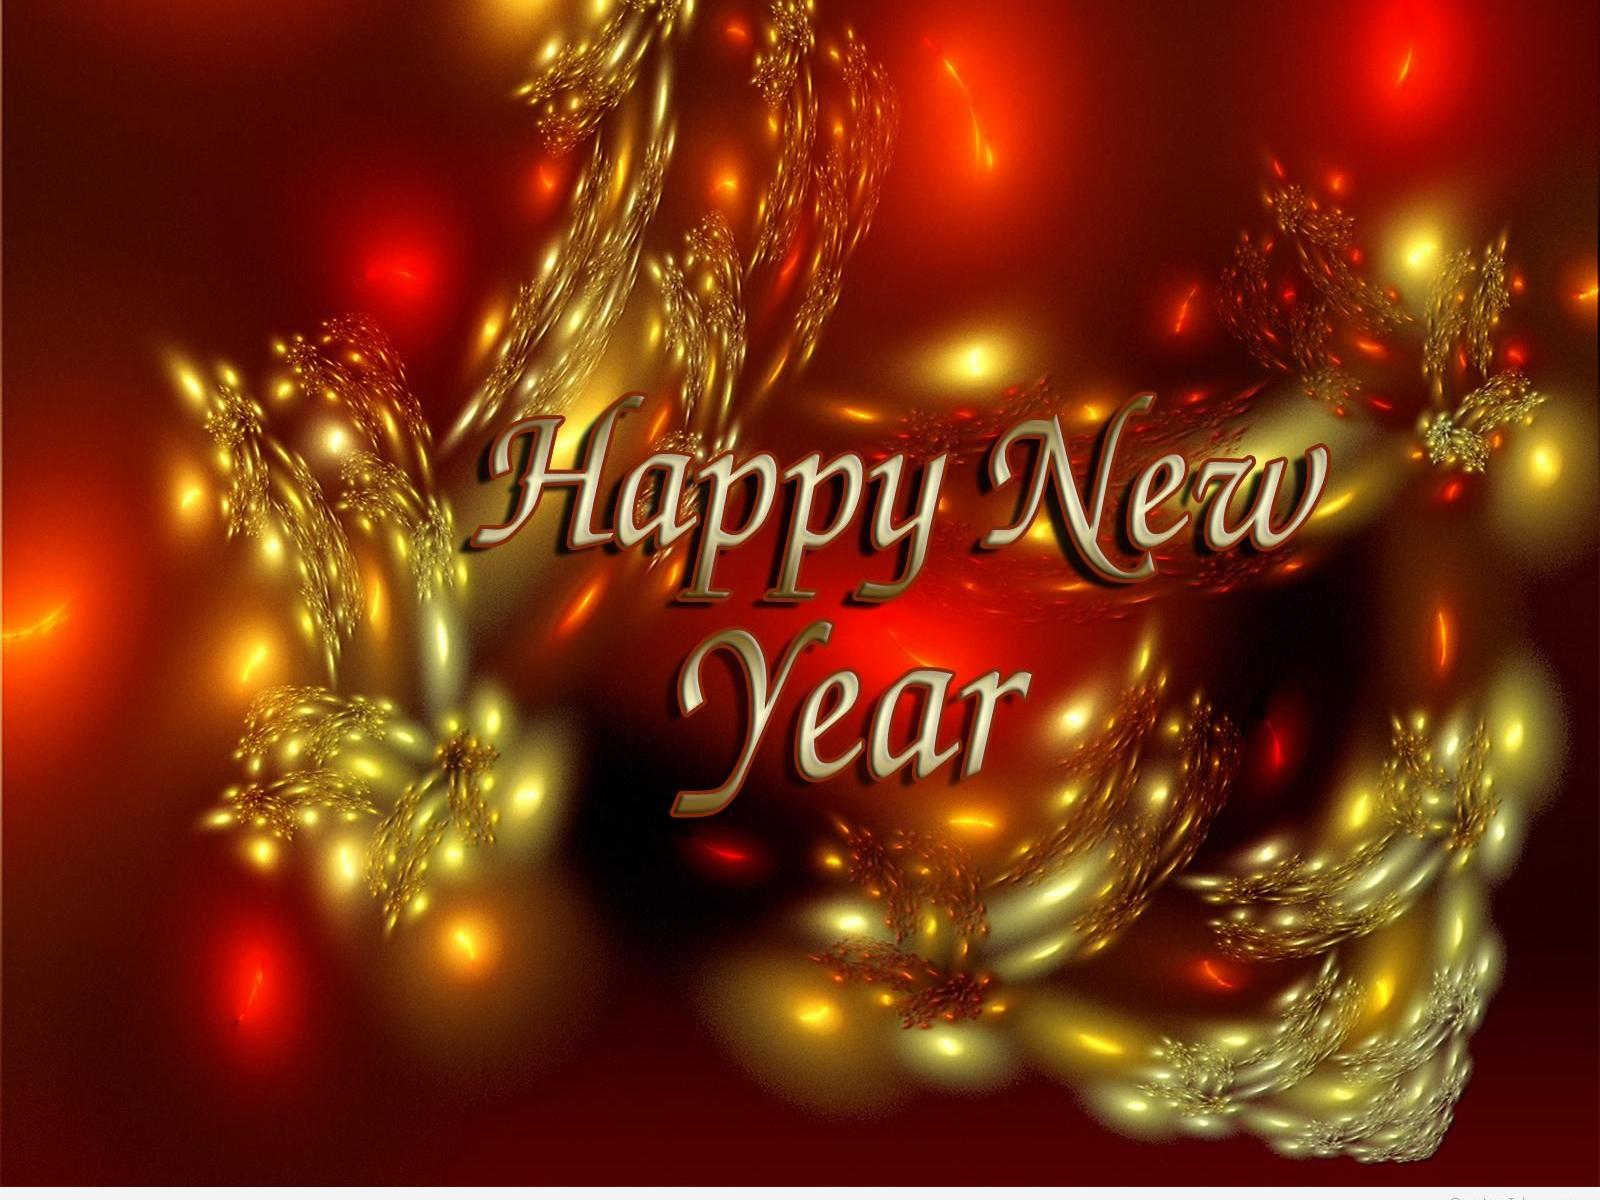 Happy new year 2016 good champagne wallpaper download for New design wallpaper 2016